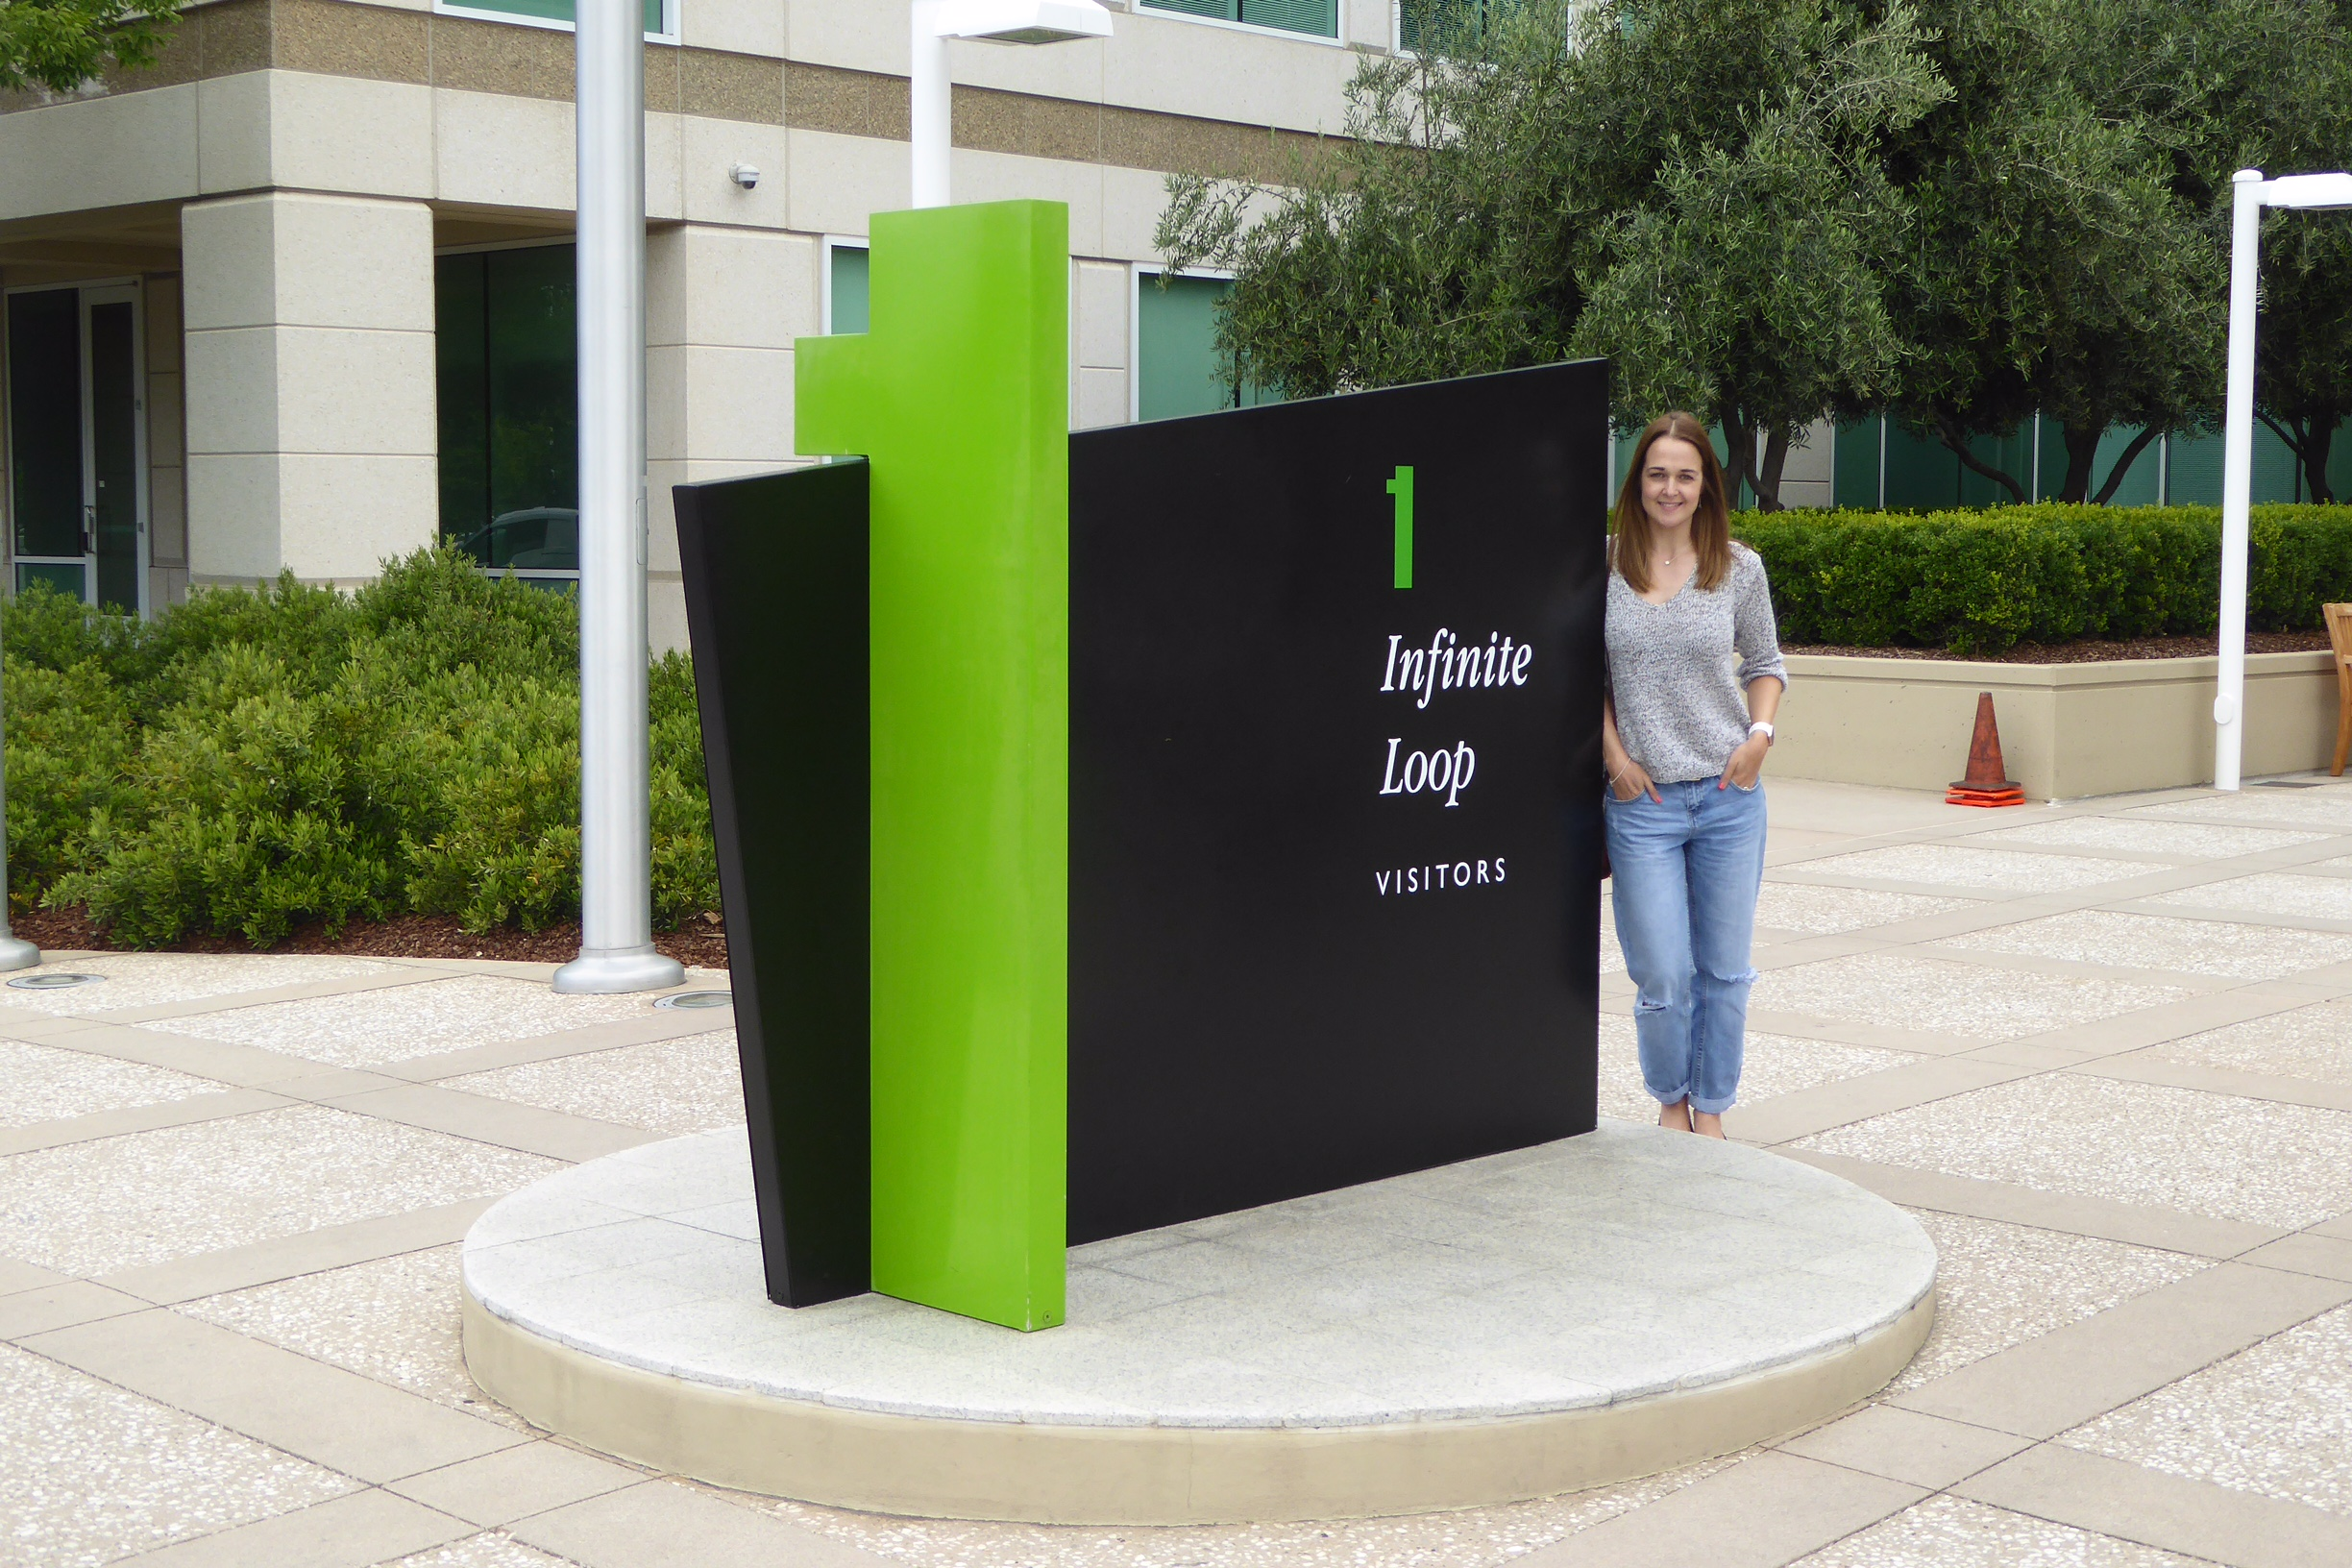 A Visit to Apple HQ; 1 Infinite Loop, Cupertino